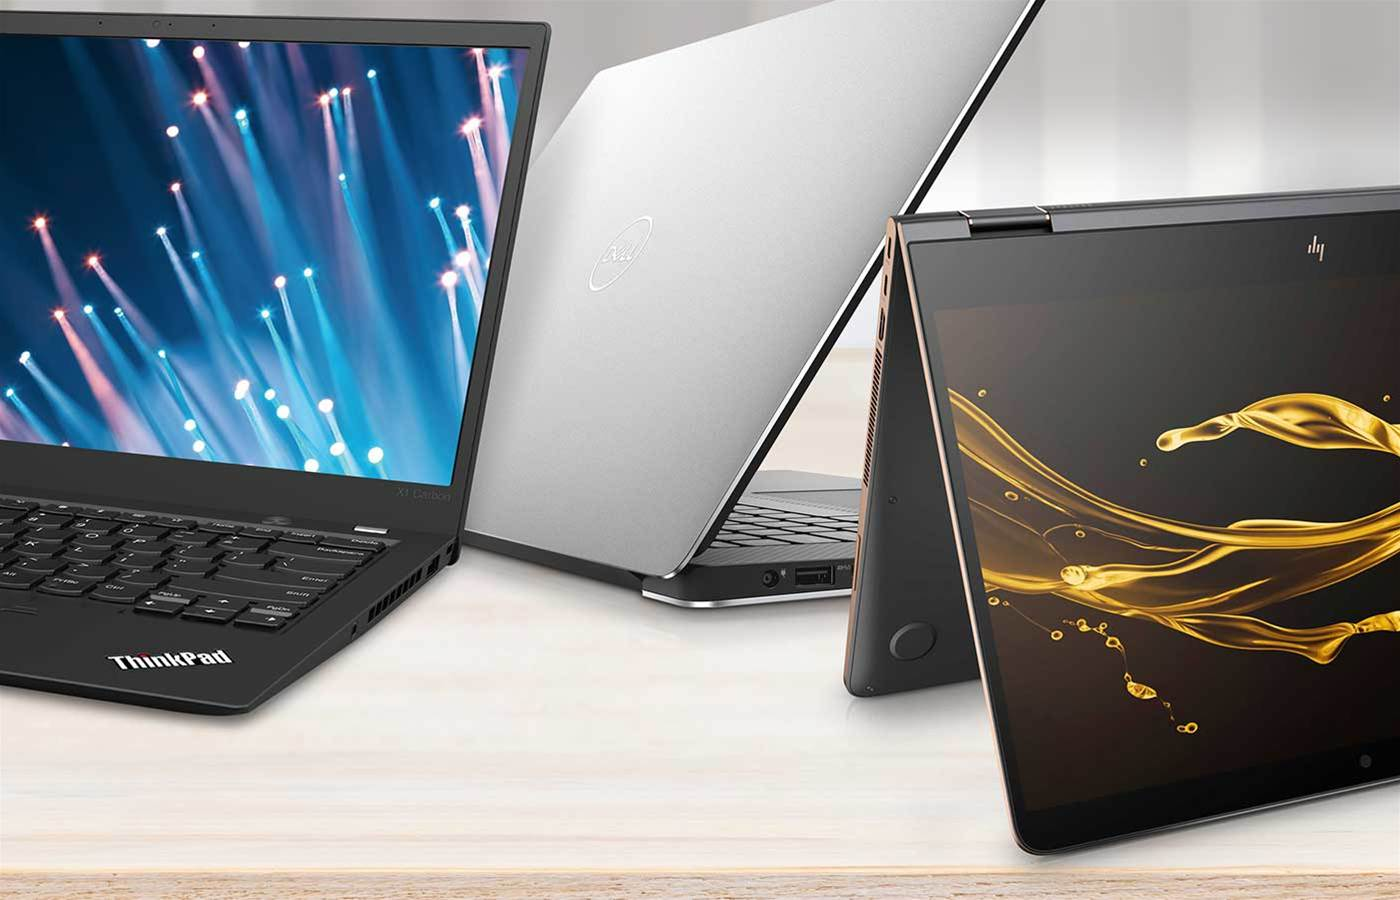 Windows 10 devices are winning with resellers